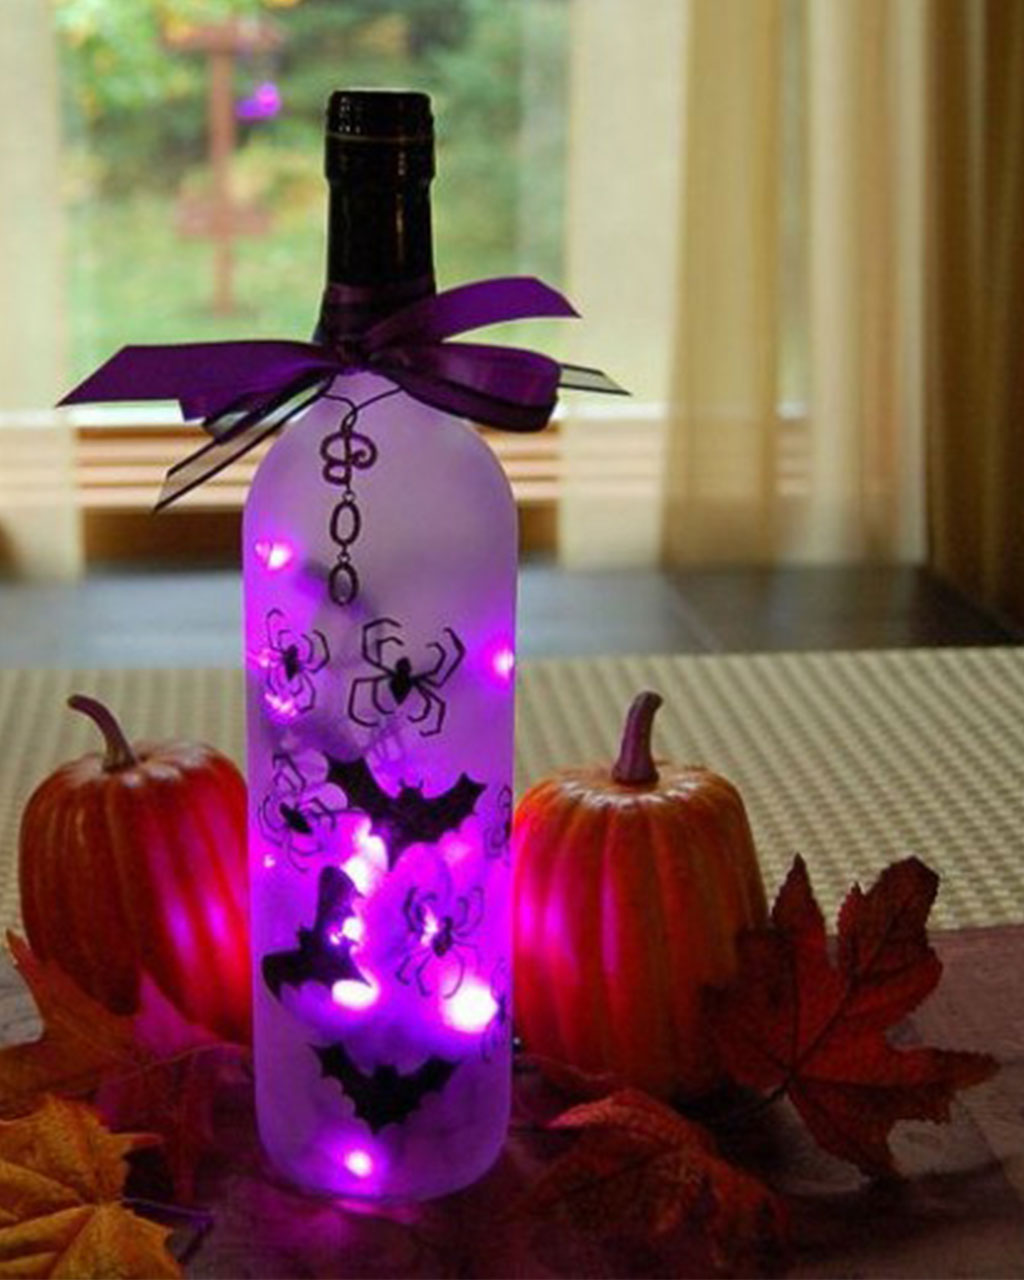 18 wine bottle turns into eerie light - Halloween Ideas Decorations